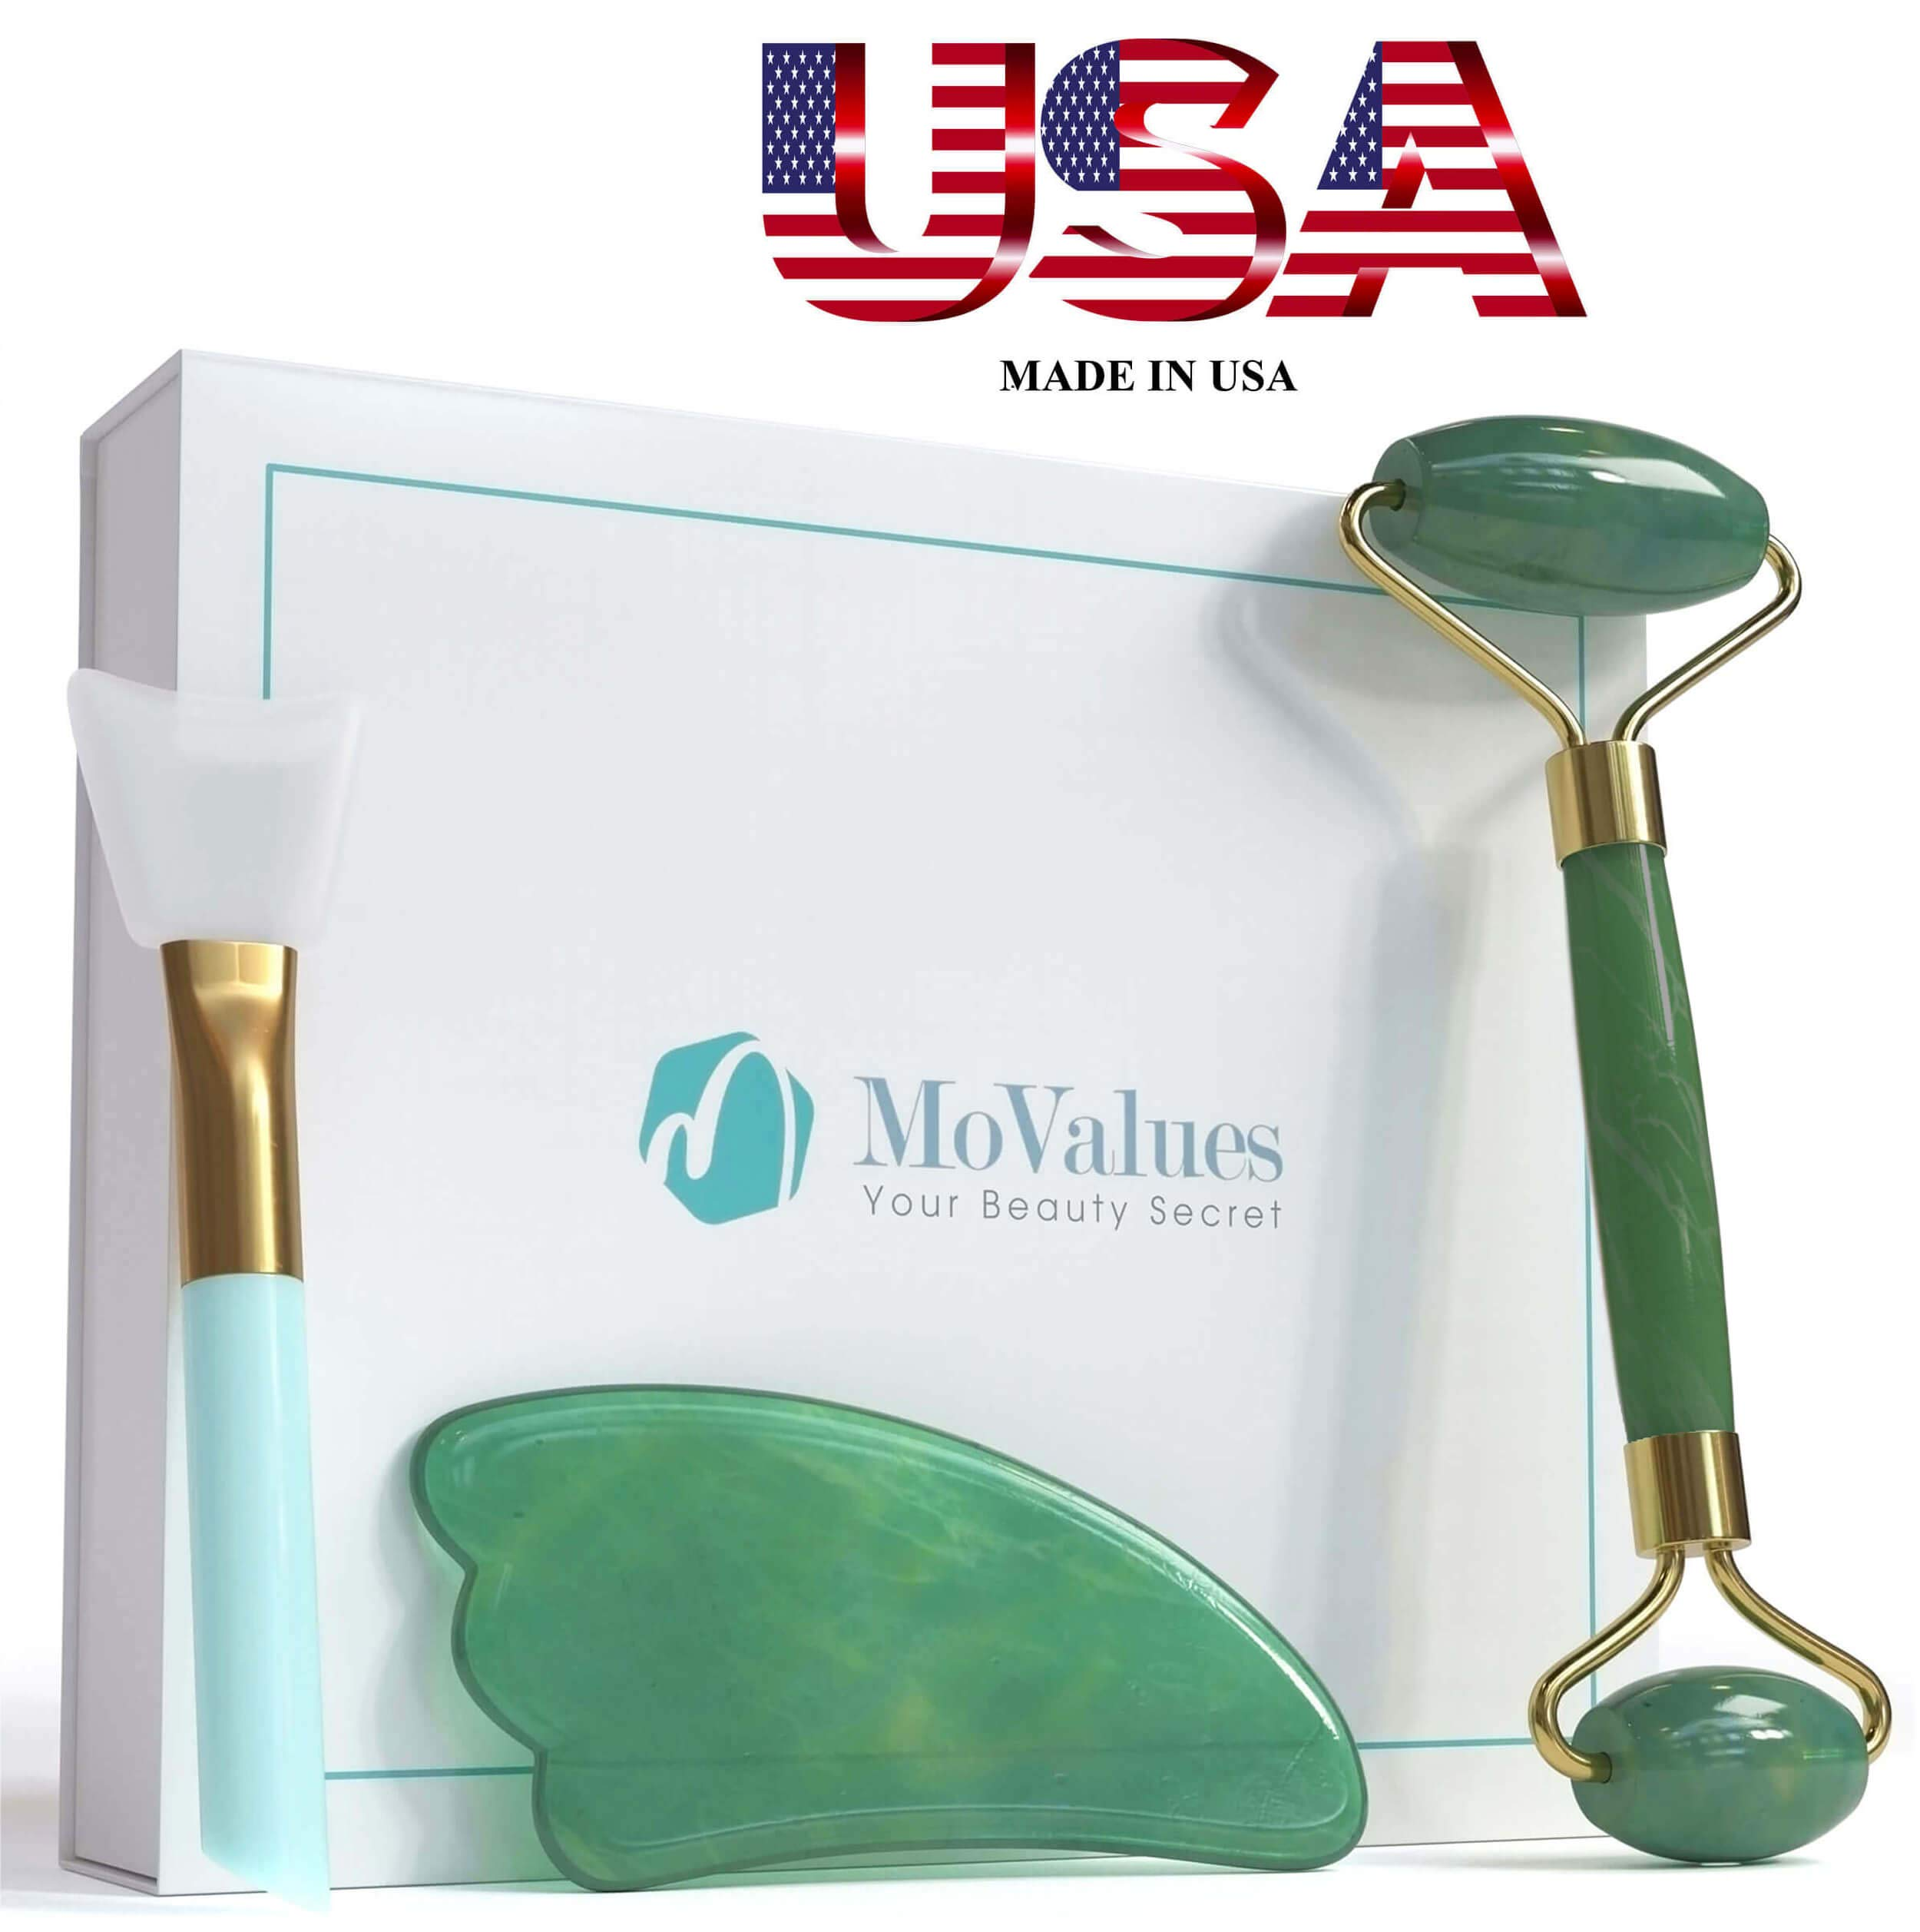 Authentic Jade Roller and Gua Sha Set - Jade Roller for Face - Face Roller, Real 100% Jade - Face Massager for Wrinkles, Anti Aging - Natural, Durable, No Squeaks - with Mask Brush by MoValues